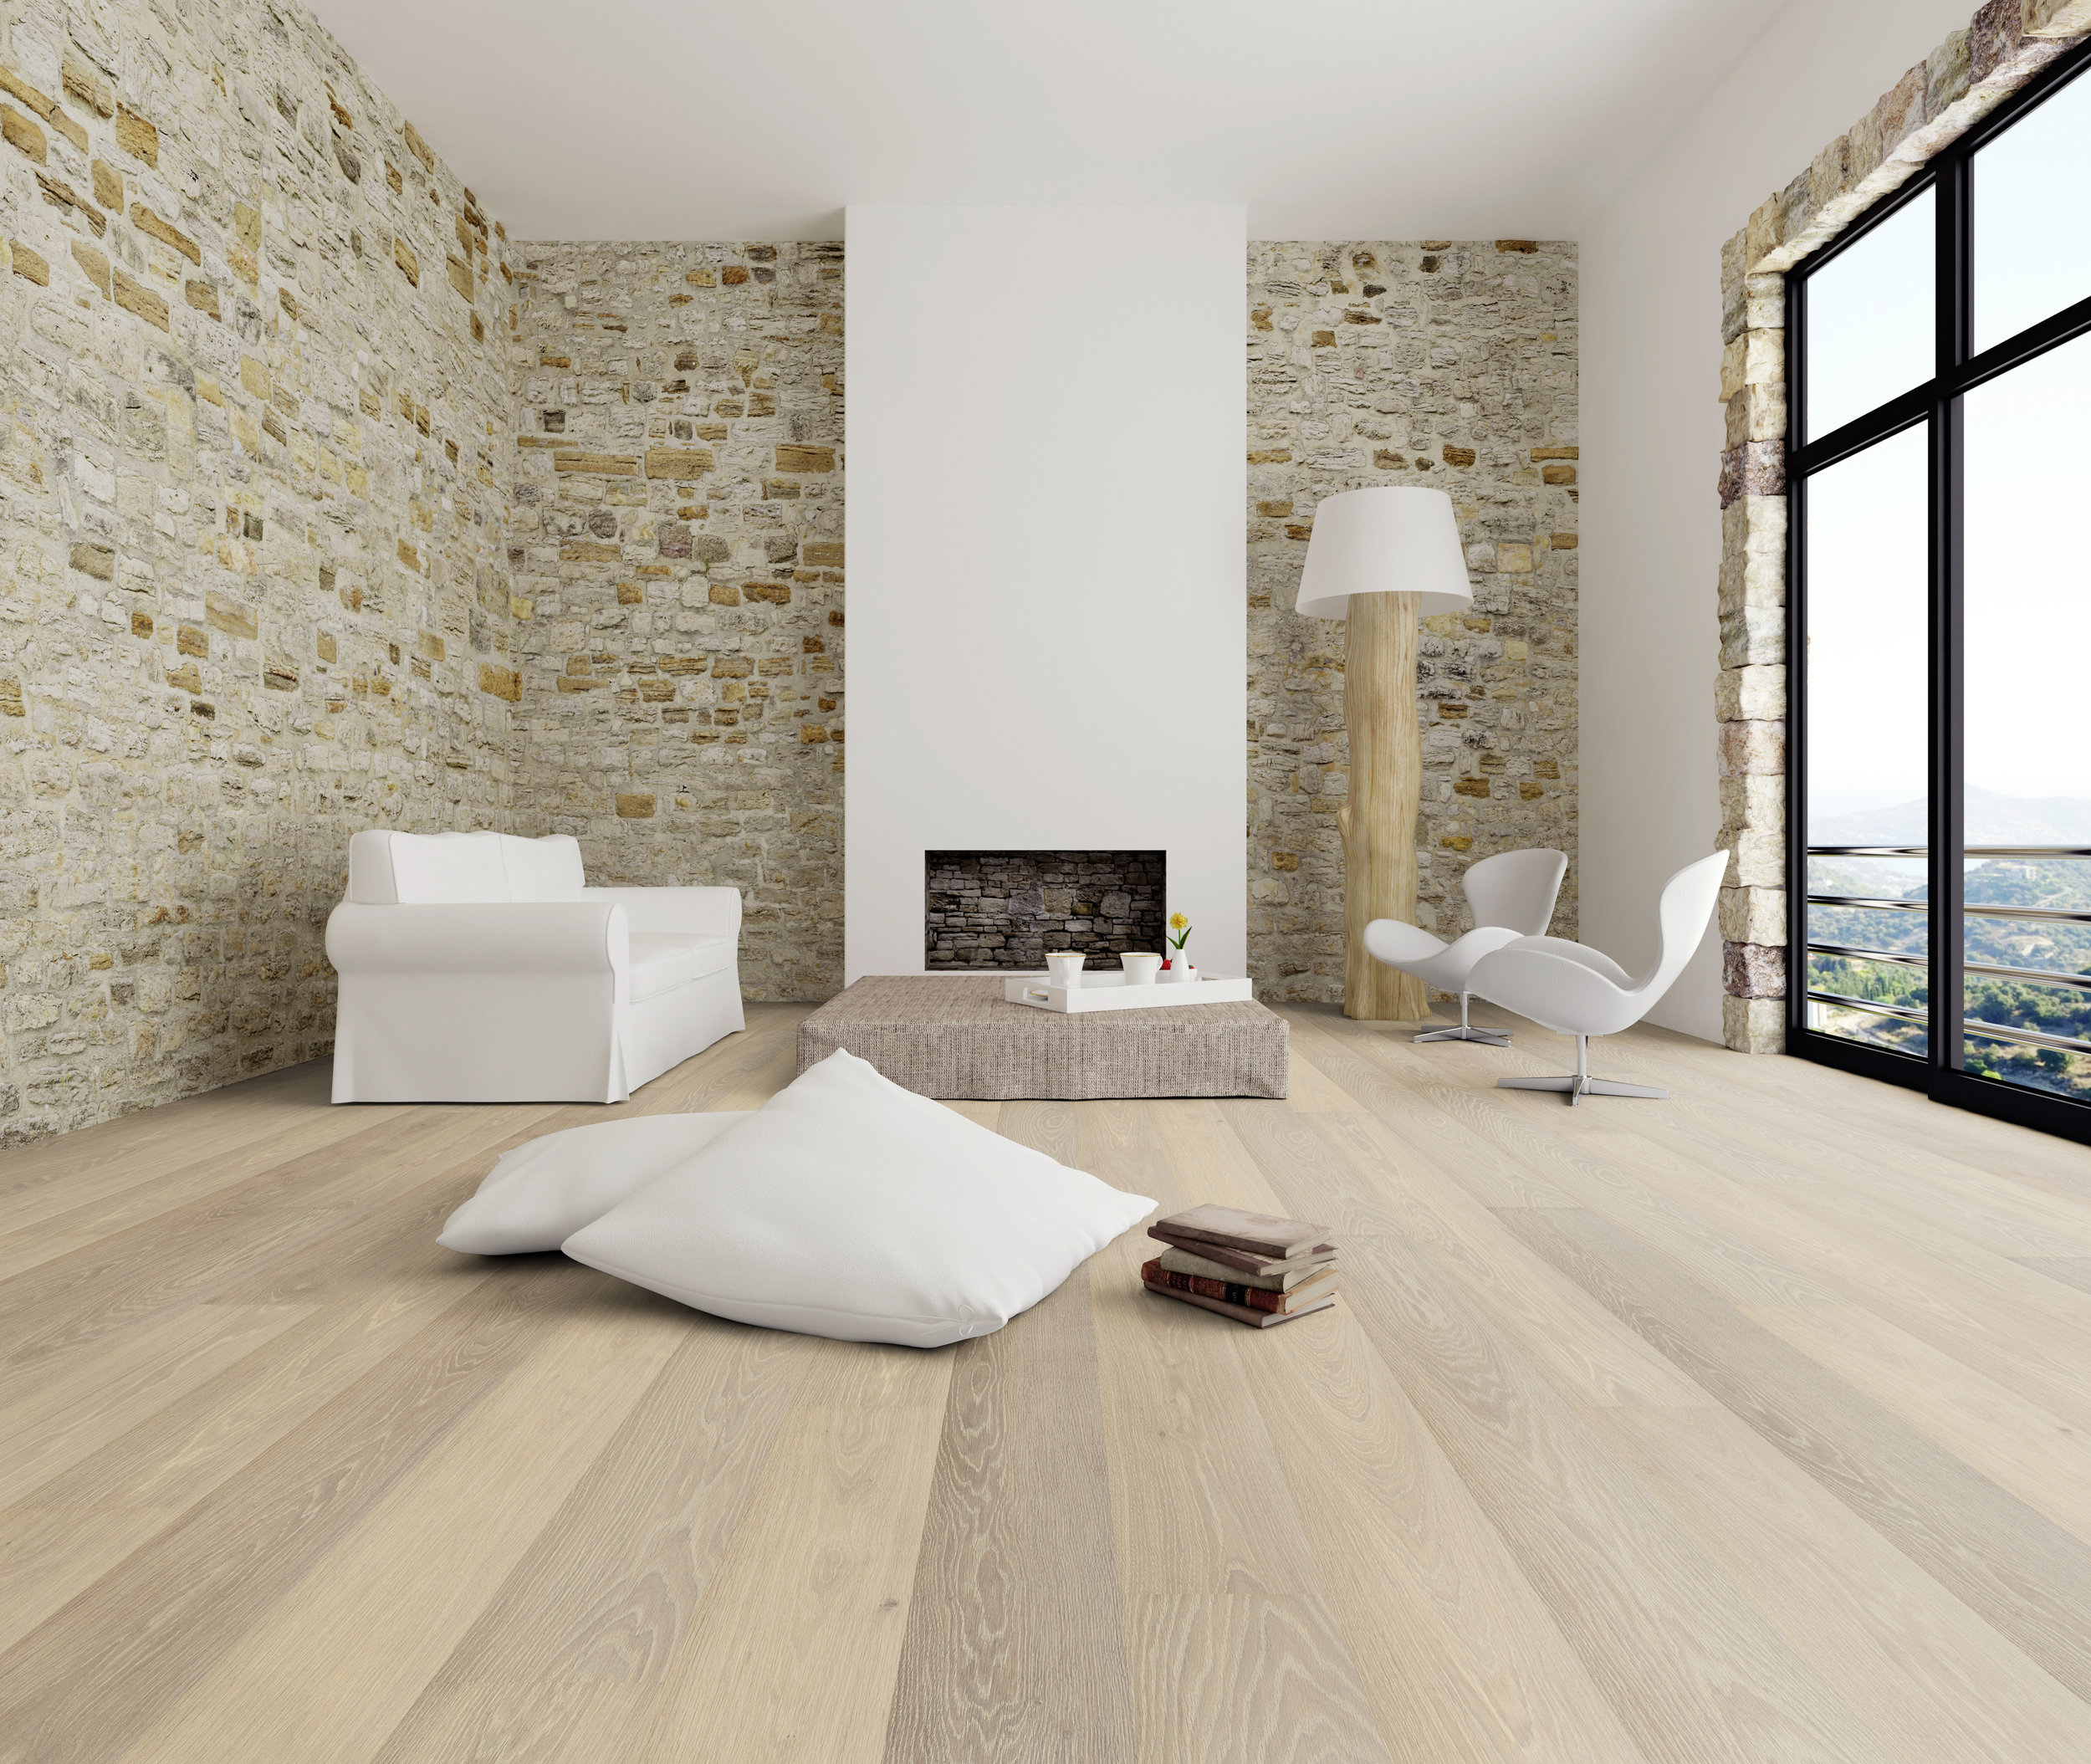 05. HAIN oak brushed, cappuccino brown oiled parquet